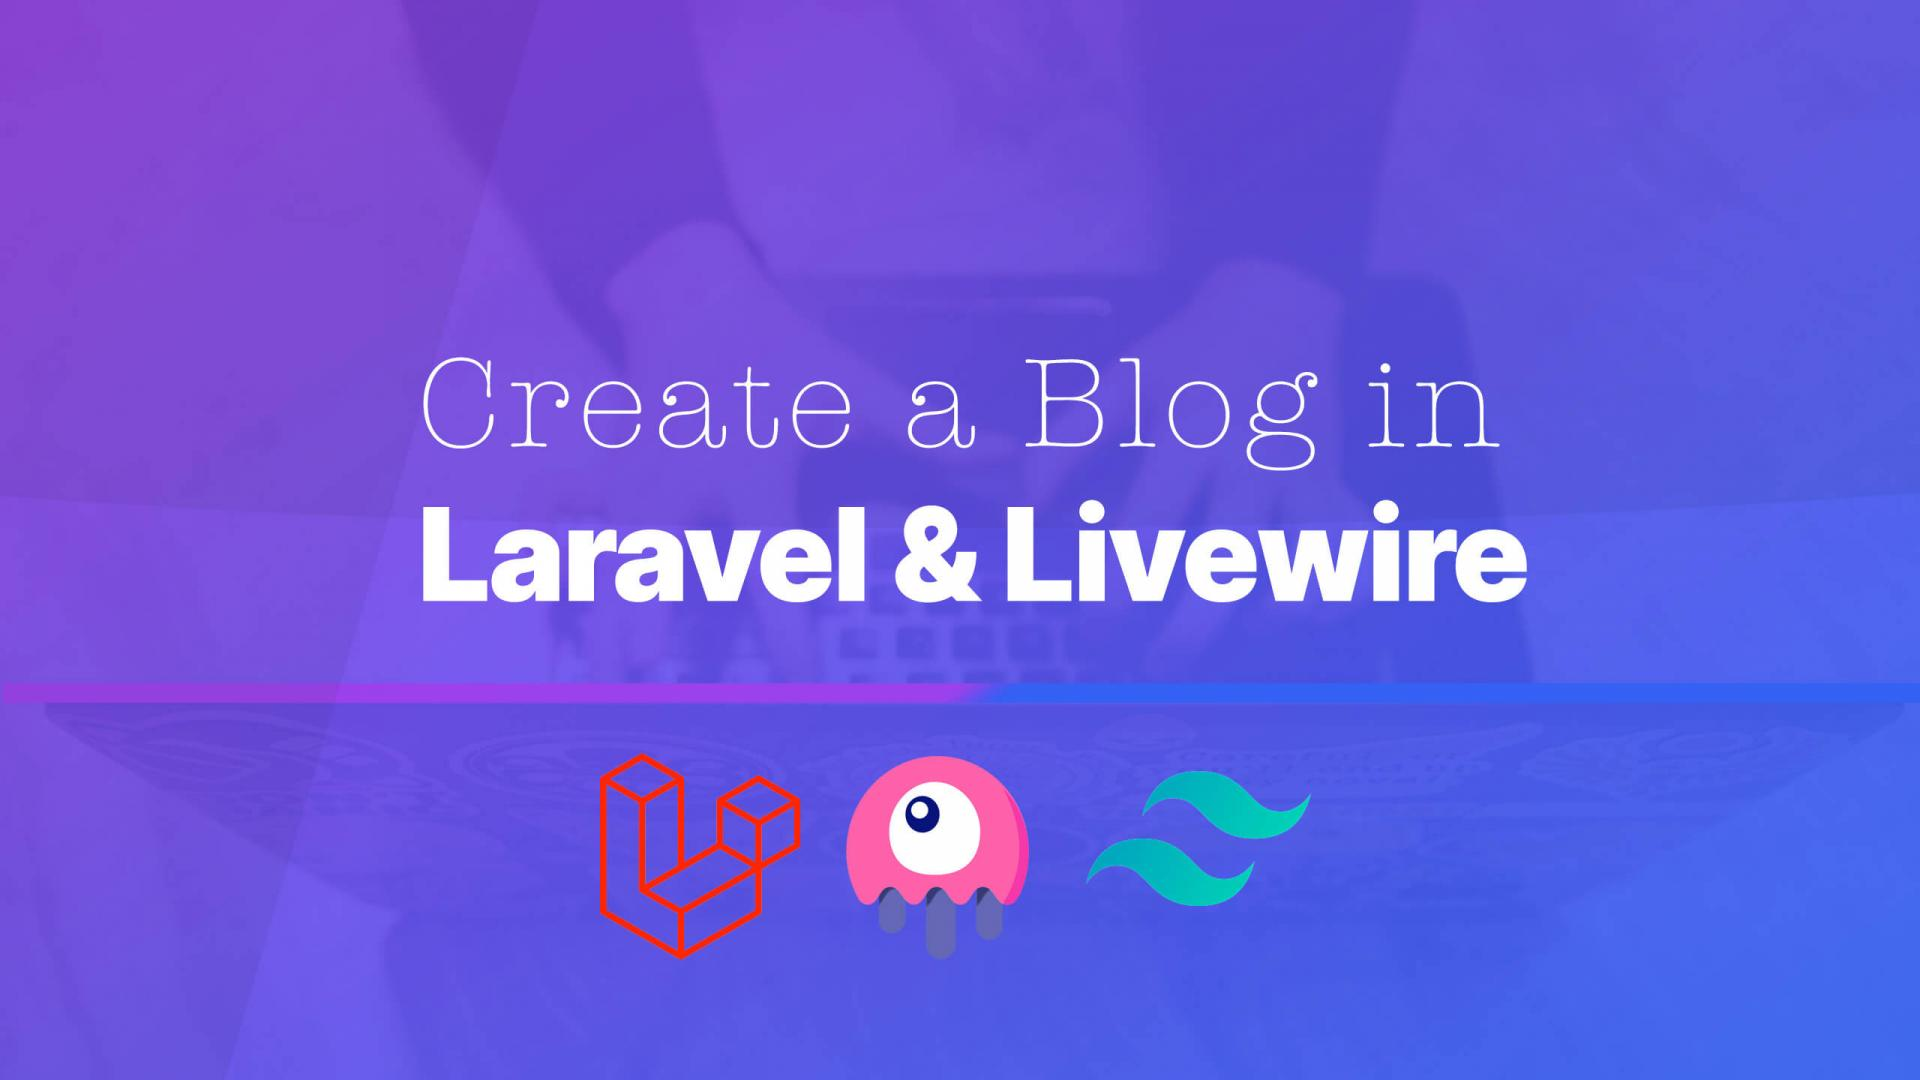 Create a Blog in Laravel and Livewire